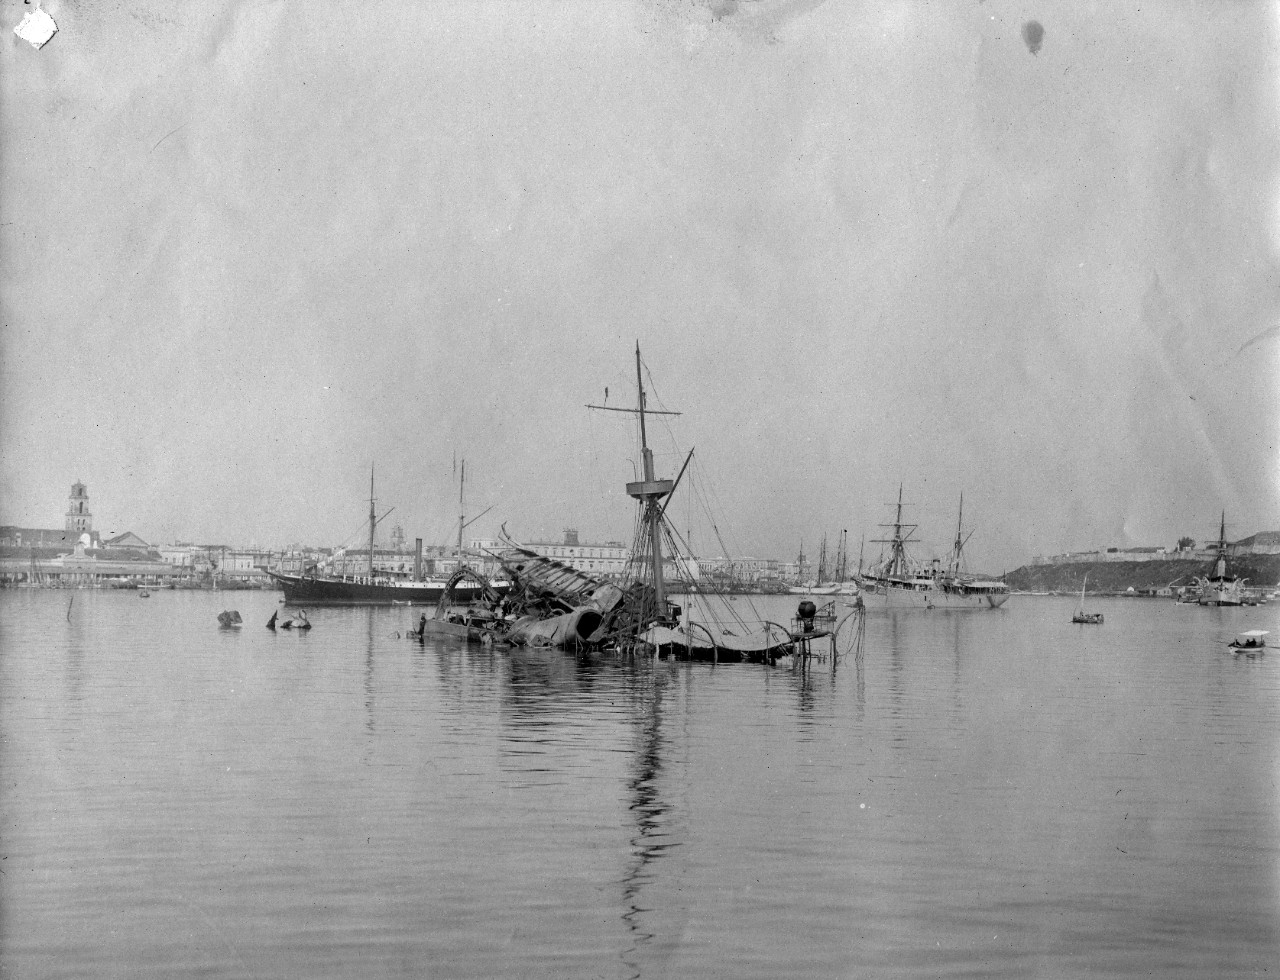 4 sepia photographs of the wreck of USS Maine in Havana Harbor, likely taken days after the incident in 1898. Photos taken by Ensign George Preston Blow, a junior officer on board USS Maine. Donated by his daughter Mrs. Wayne Chatfield Taylor to the Naval Historical Foundation in 1961, and later donated to the Naval History and Heritage Command.